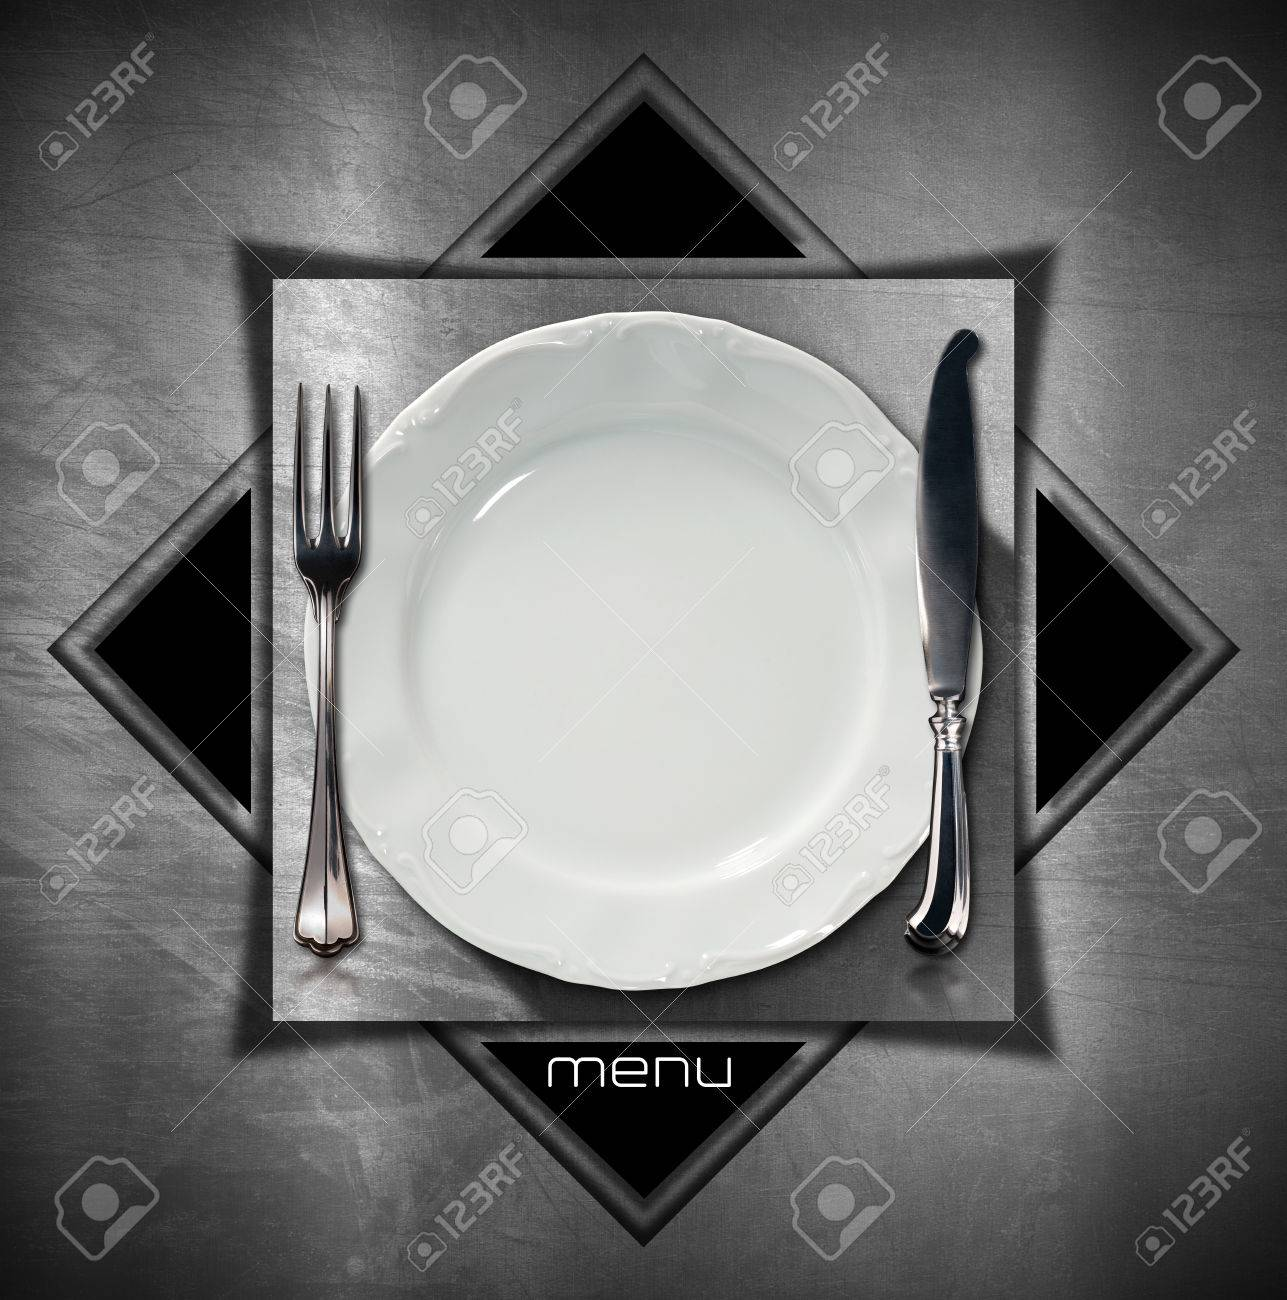 Steel stainless background with geometric shapes square and triangles with empty plate and cutlery. & Steel Stainless Background With Geometric Shapes Square And.. Stock ...